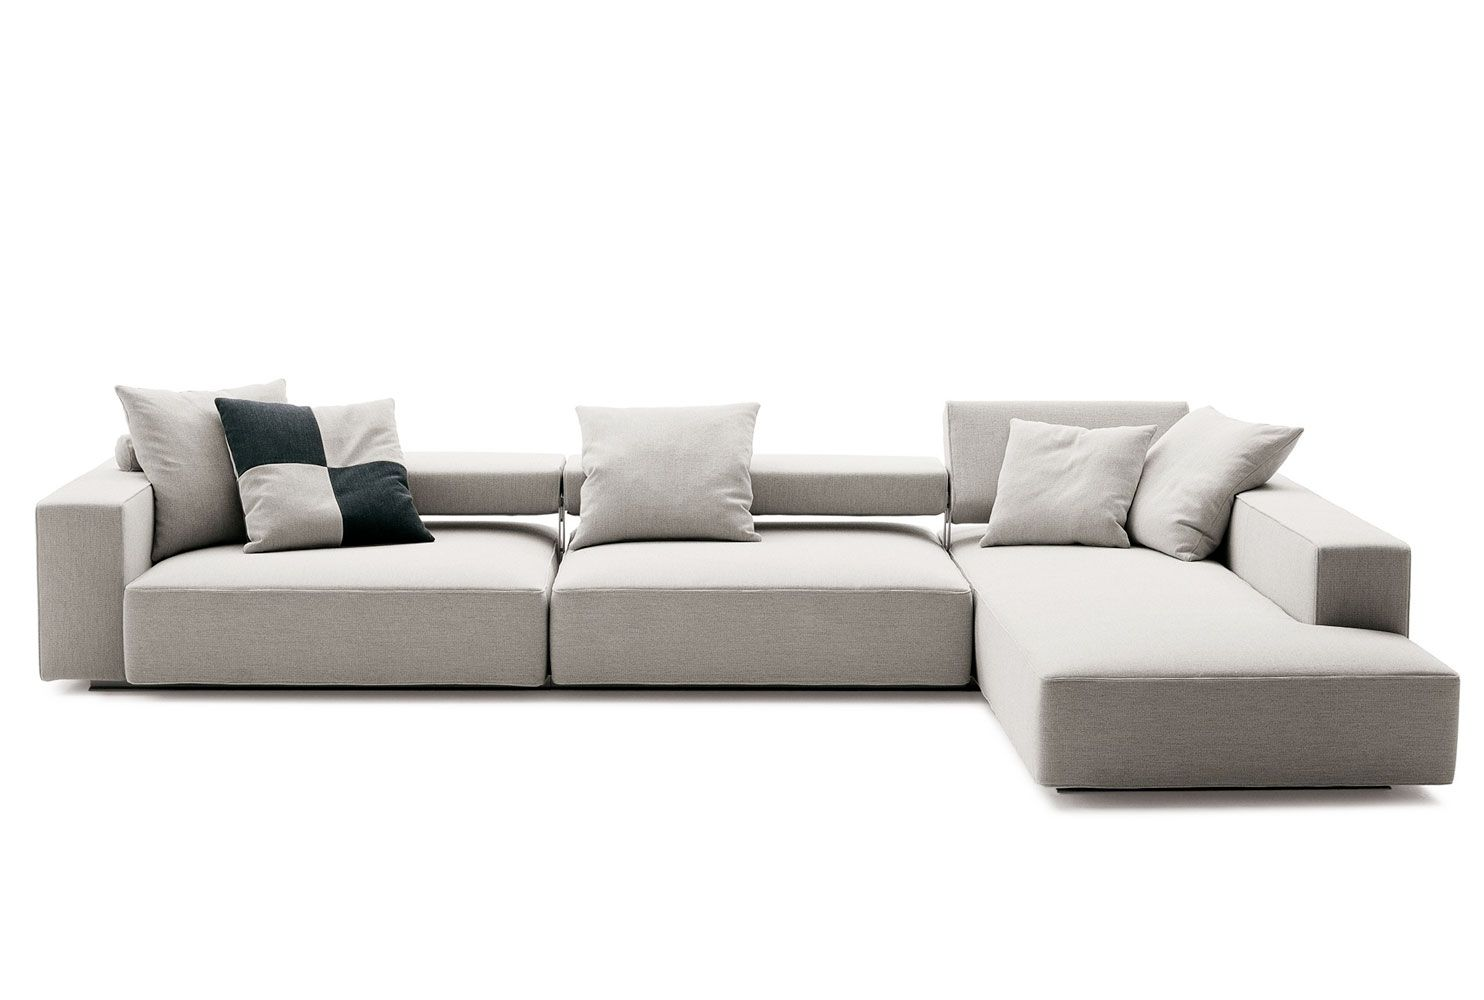 sofa andy collection b b italia design paolo piva